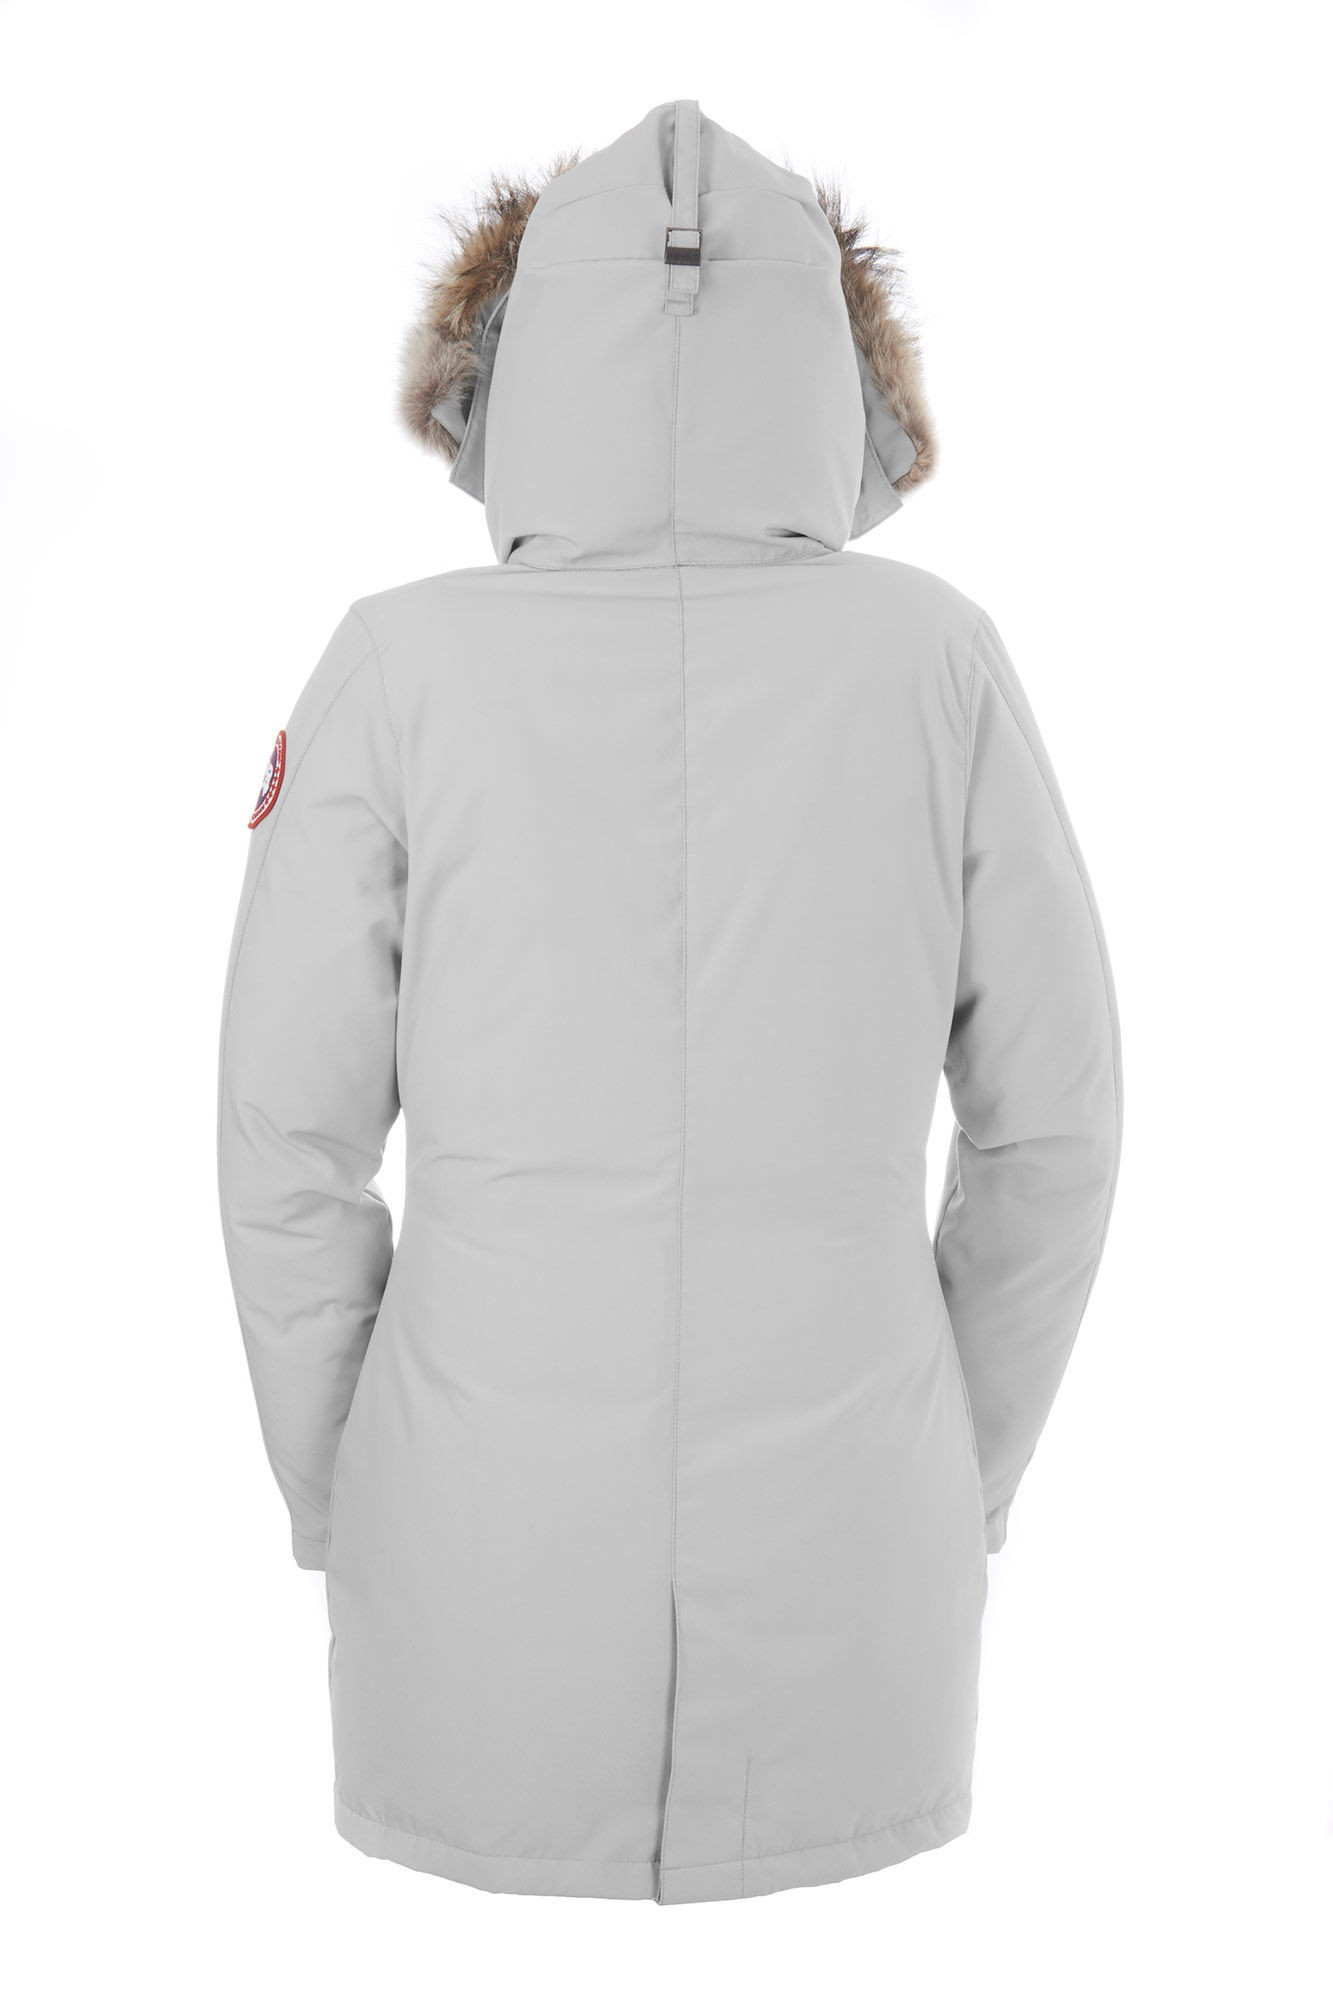 CANADA GOOSE VICTORIA PARKA WOMEN Silverbirch 3037L. Be the first to review  this product 2d4a47721